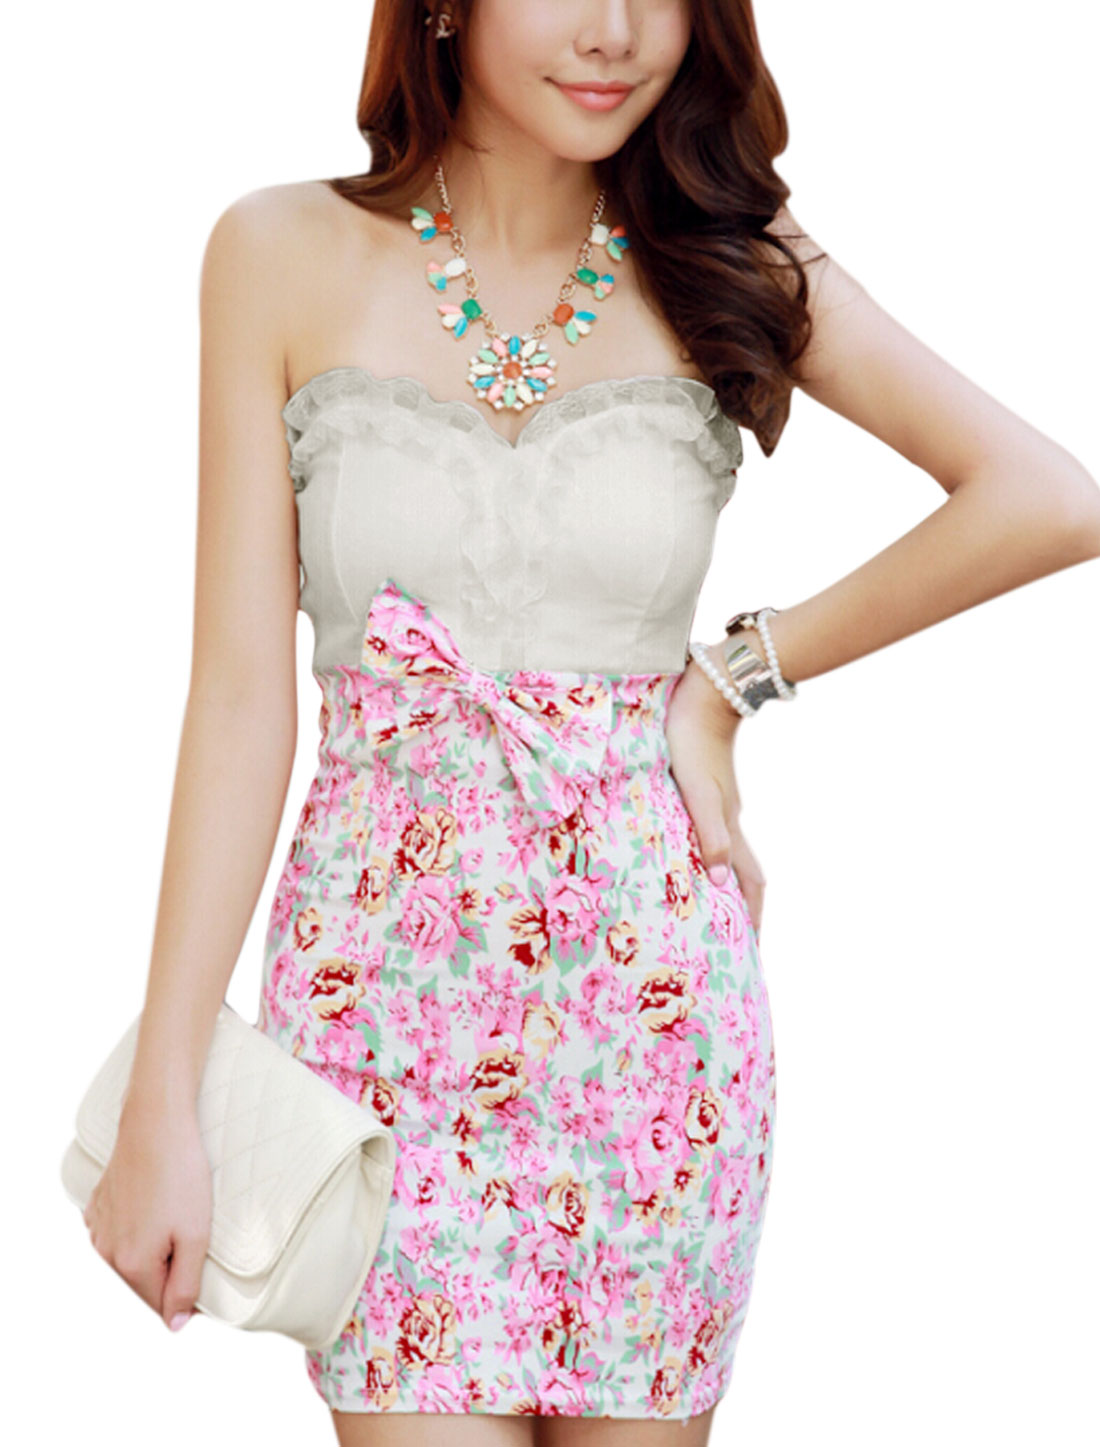 Lady Strapless Bowknot Decor Floral Prints Sexy Dress White Pink XS